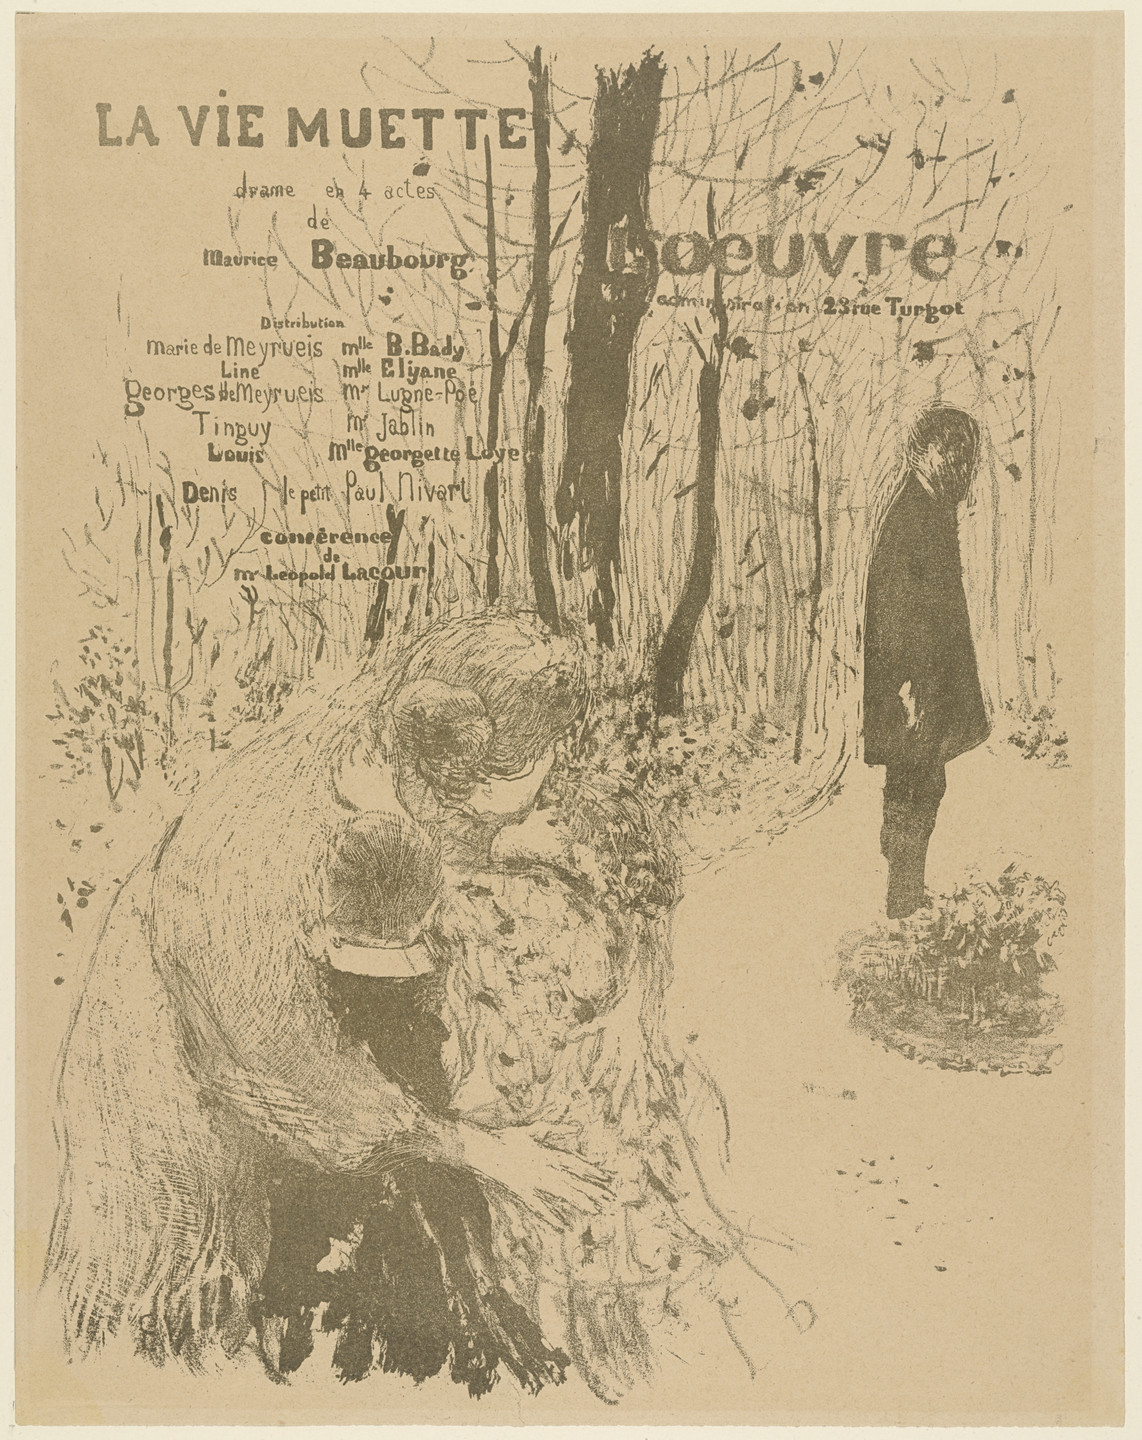 Édouard Vuillard. Program for La Vie Muette. November 1894